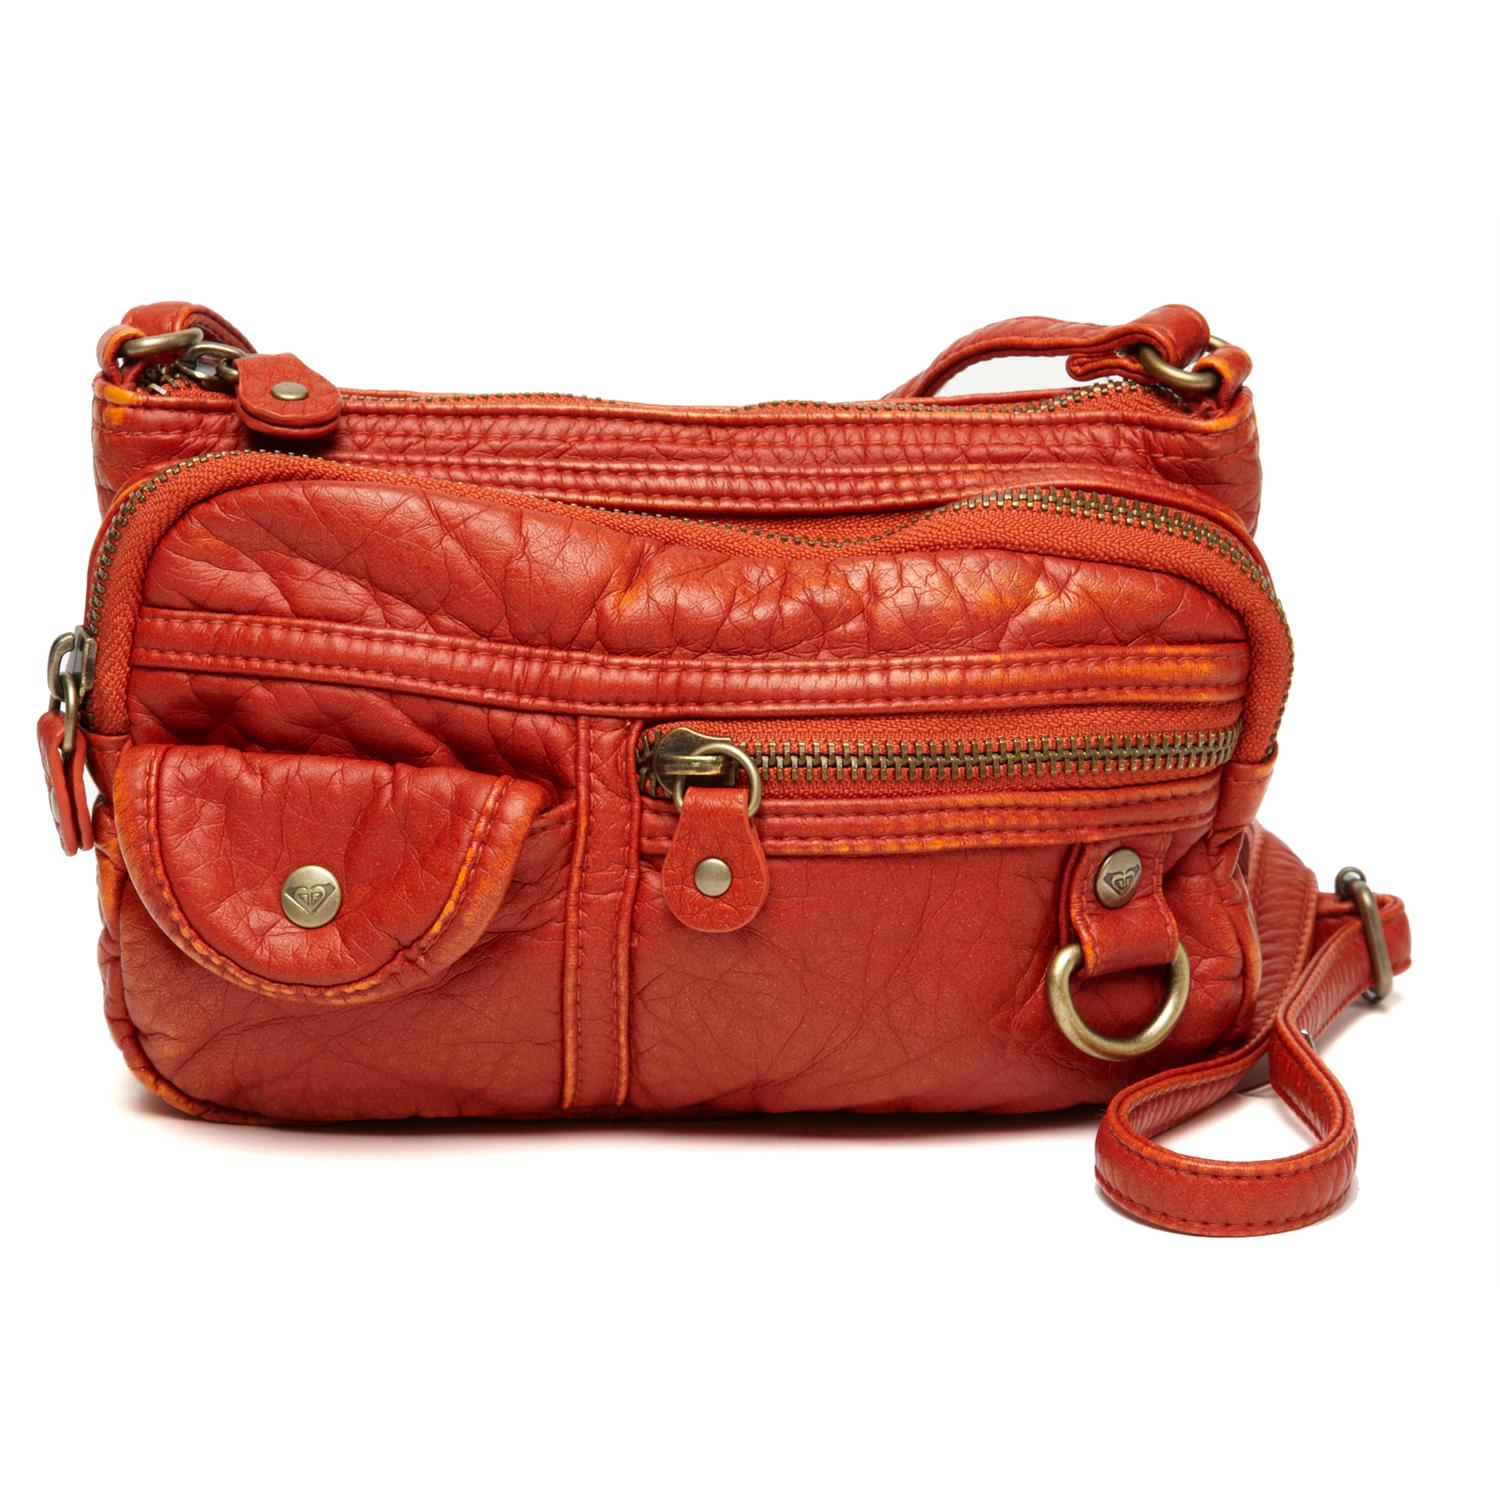 Beautiful A Good Weekend Bag Thats Sturdy And Stylish And Not Obscenely  Some Of Our